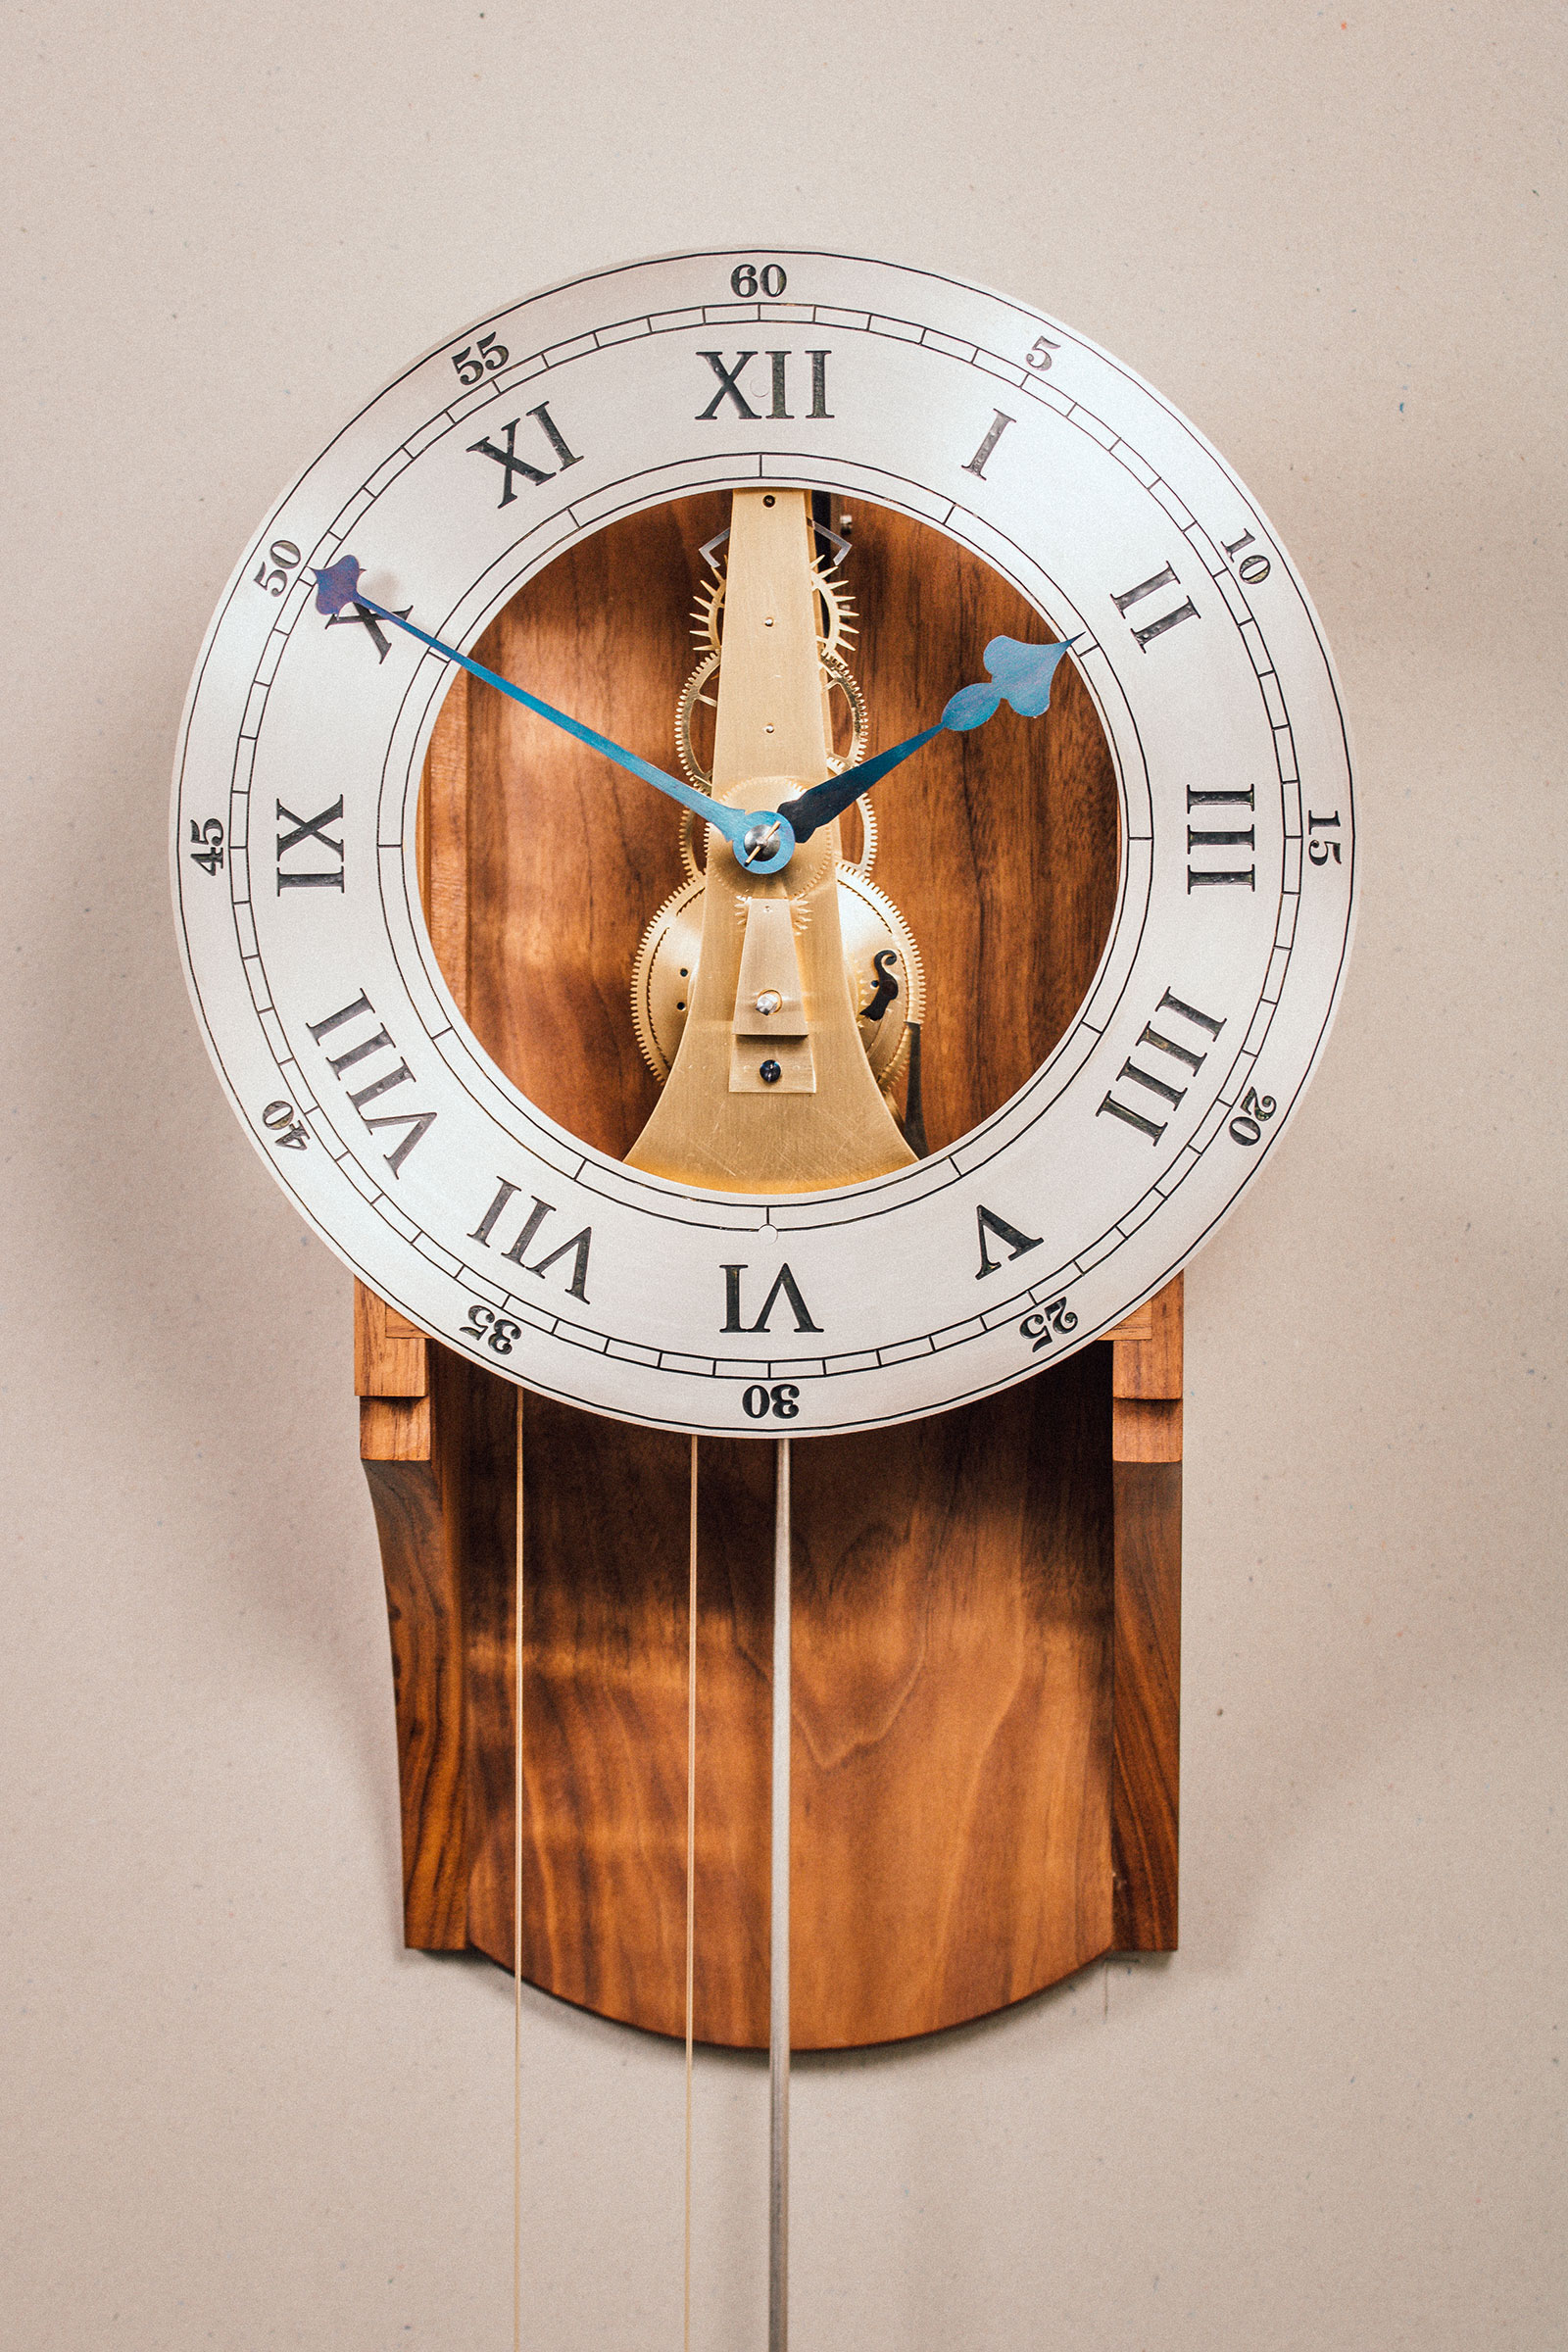 Tyler John Davies clock FP Journe competition 2019 2